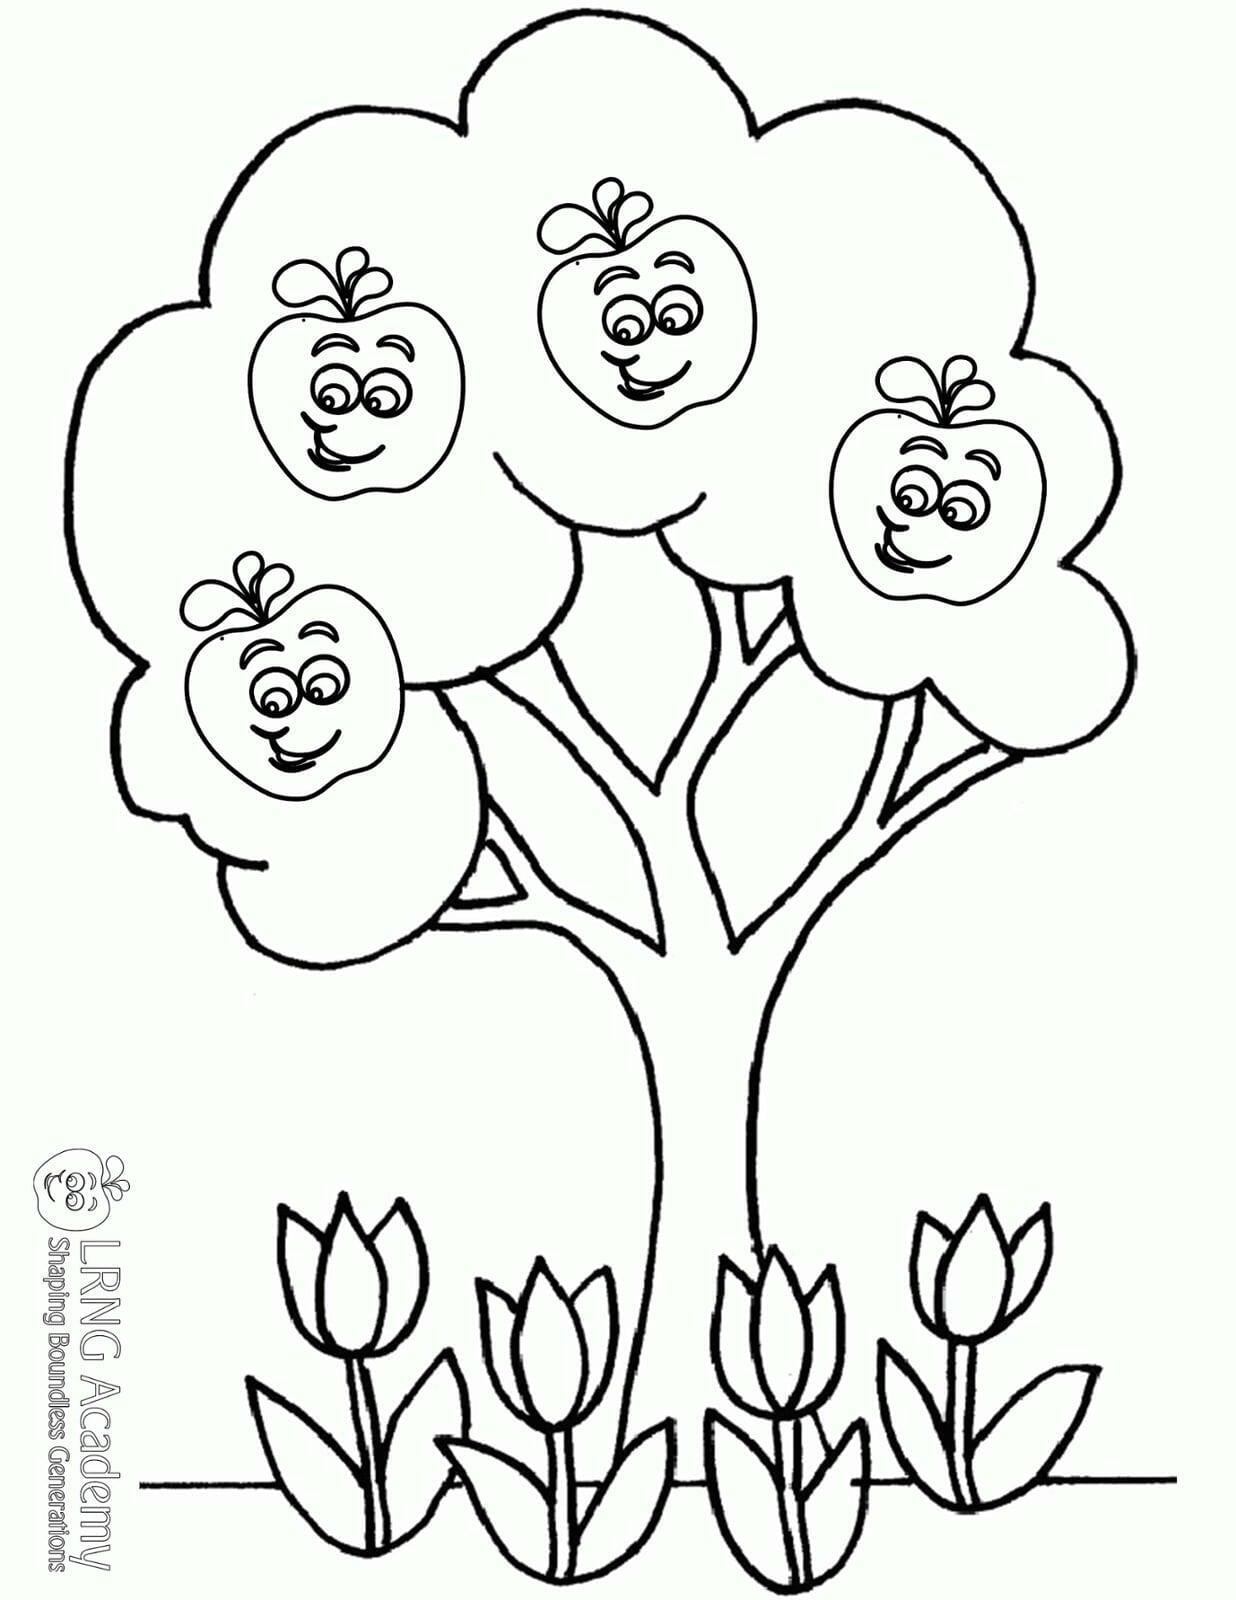 Spring Appie Tree - Appie Activities - LRNG Academy - Shaping Boundless Generations - Online Tutoring | Online Learning | eLearning | Virtual School | Tutoring Service | Virtual Learning